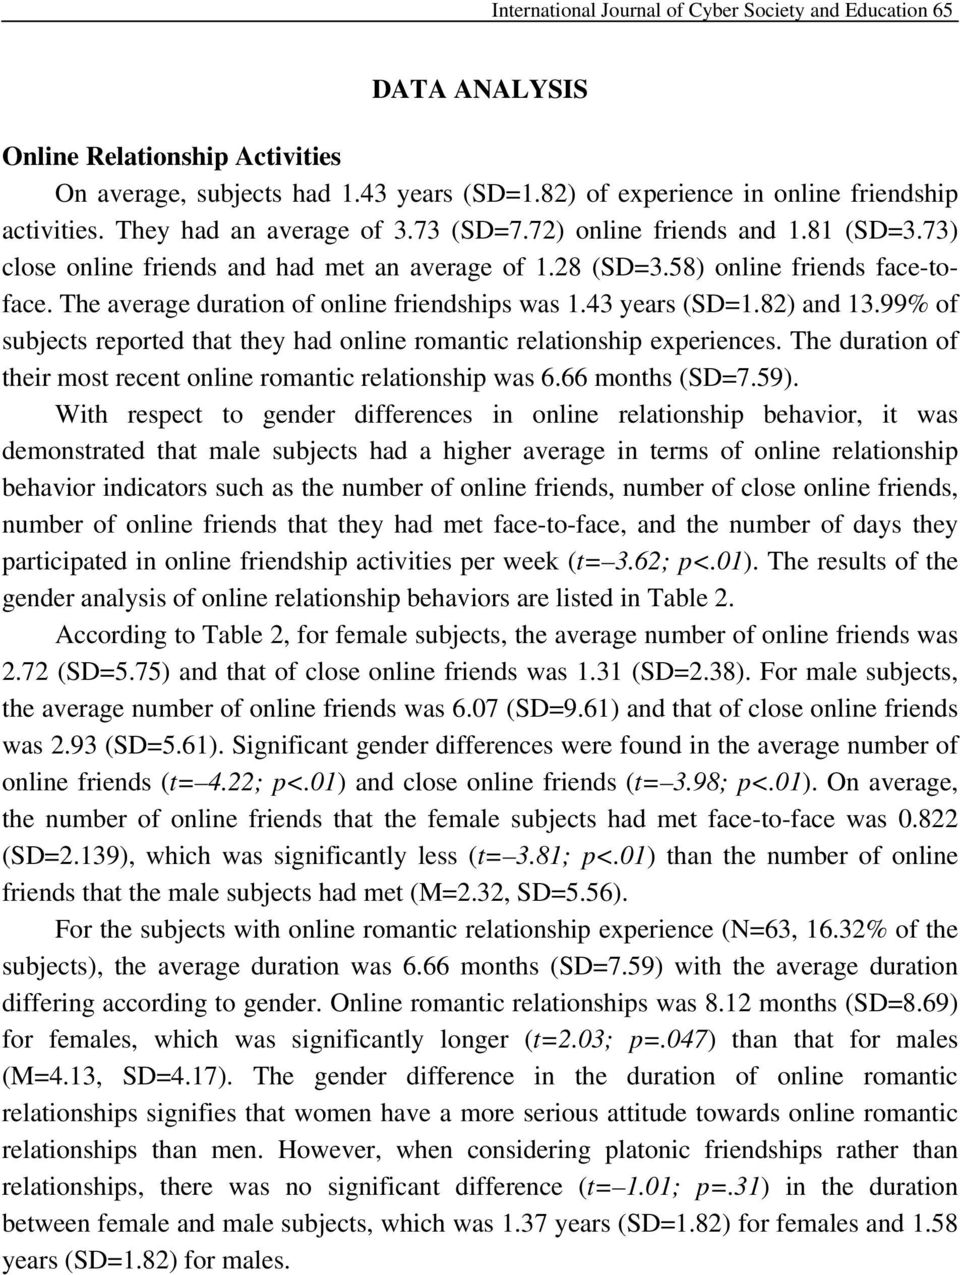 The average duration of online friendships was 1.43 years (SD=1.82) and 13.99% of subjects reported that they had online romantic relationship experiences.